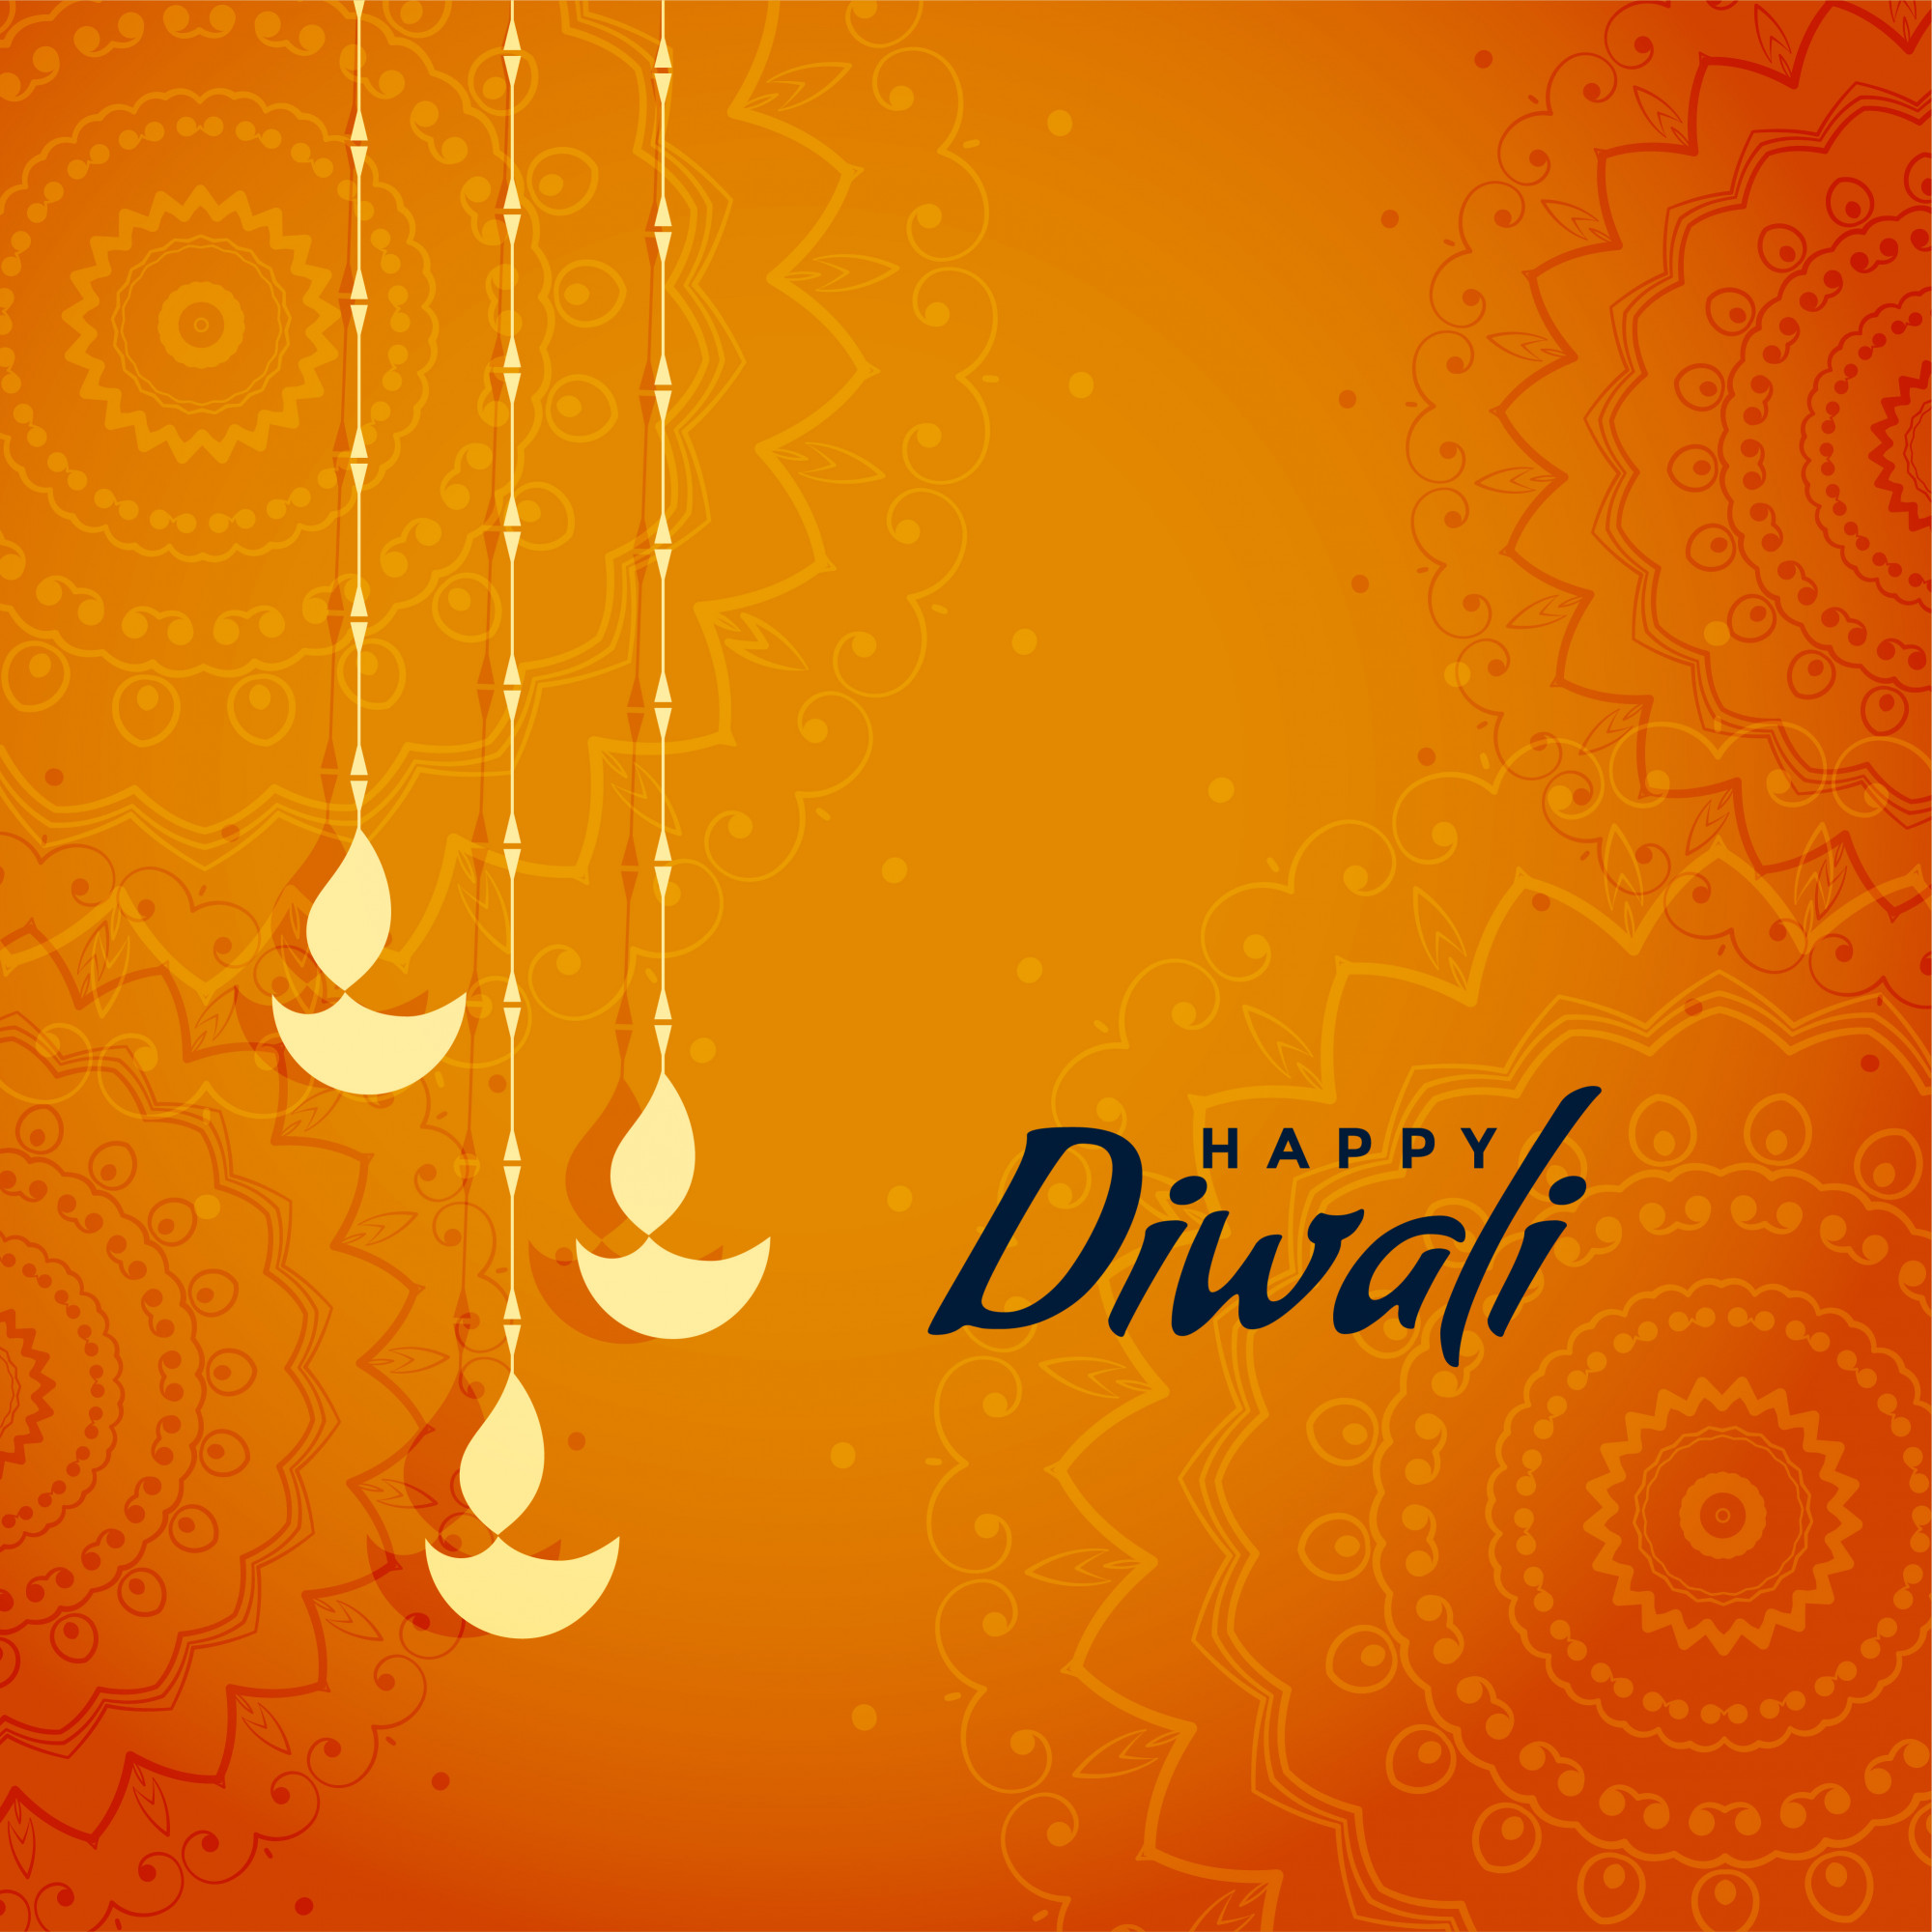 Elegant traditional diwali festival greeting design